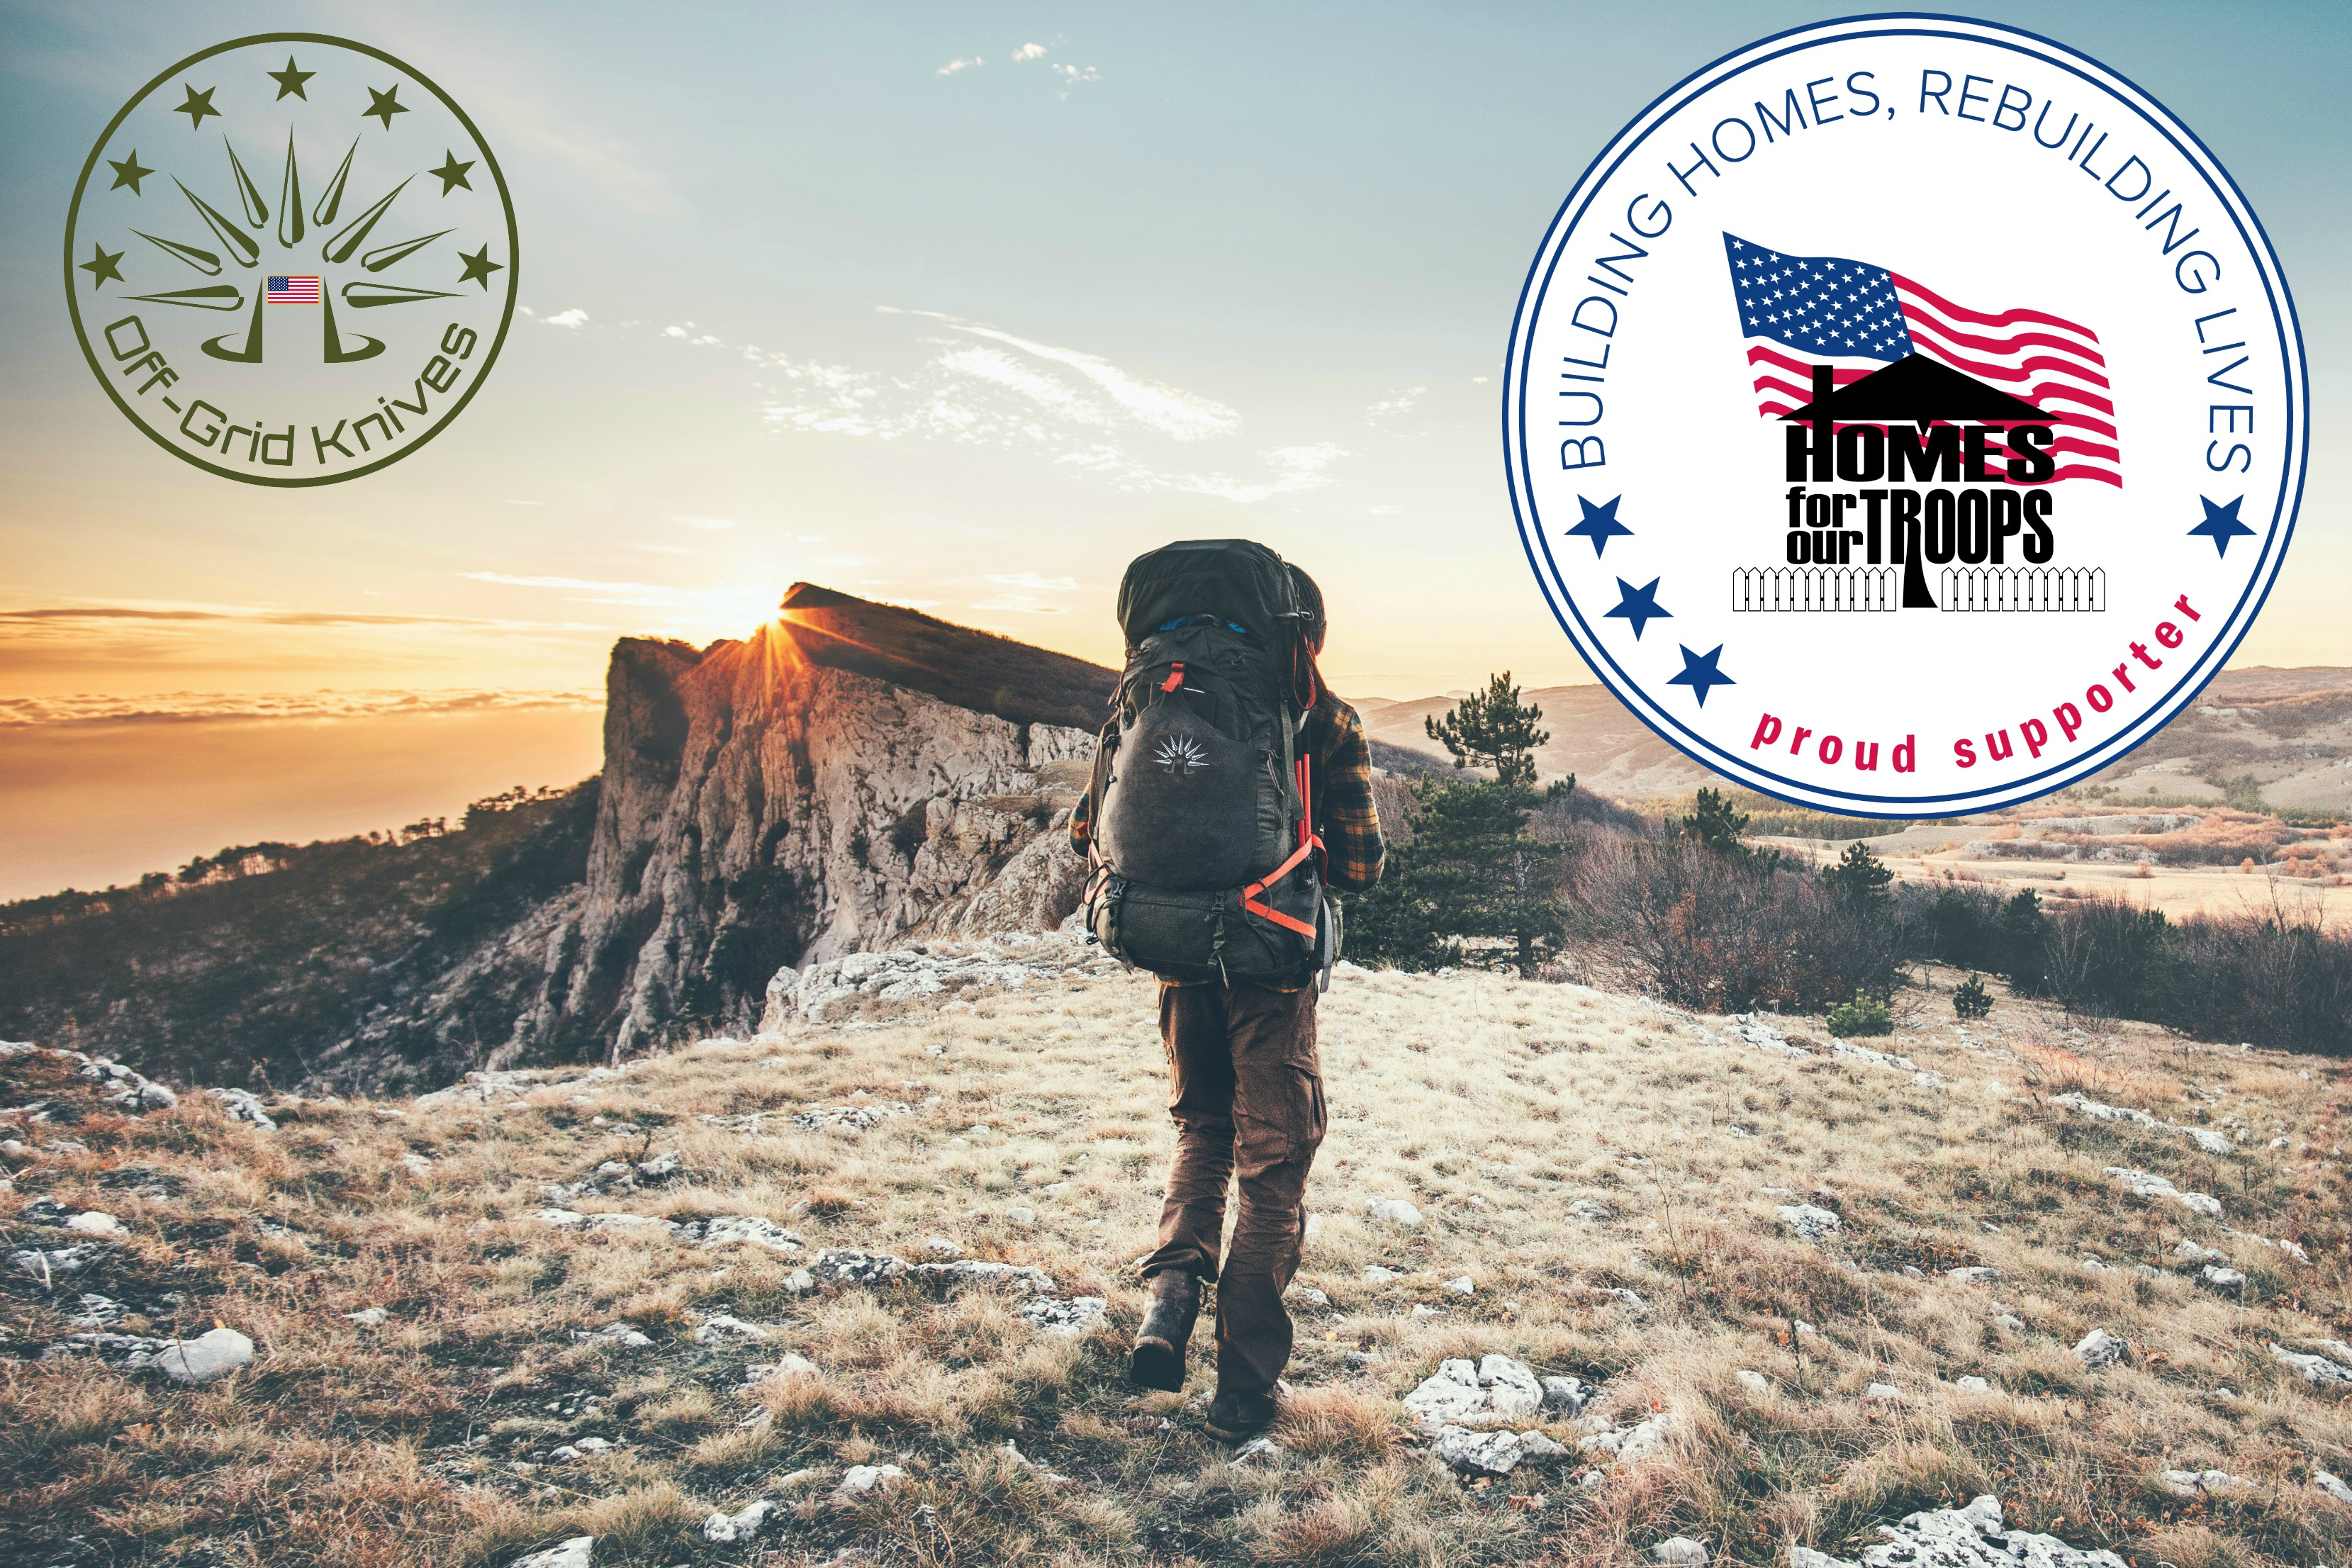 home-page-homes-for-troops-2-backpack-off-grid-shutterstock-with-trans-logo.jpg